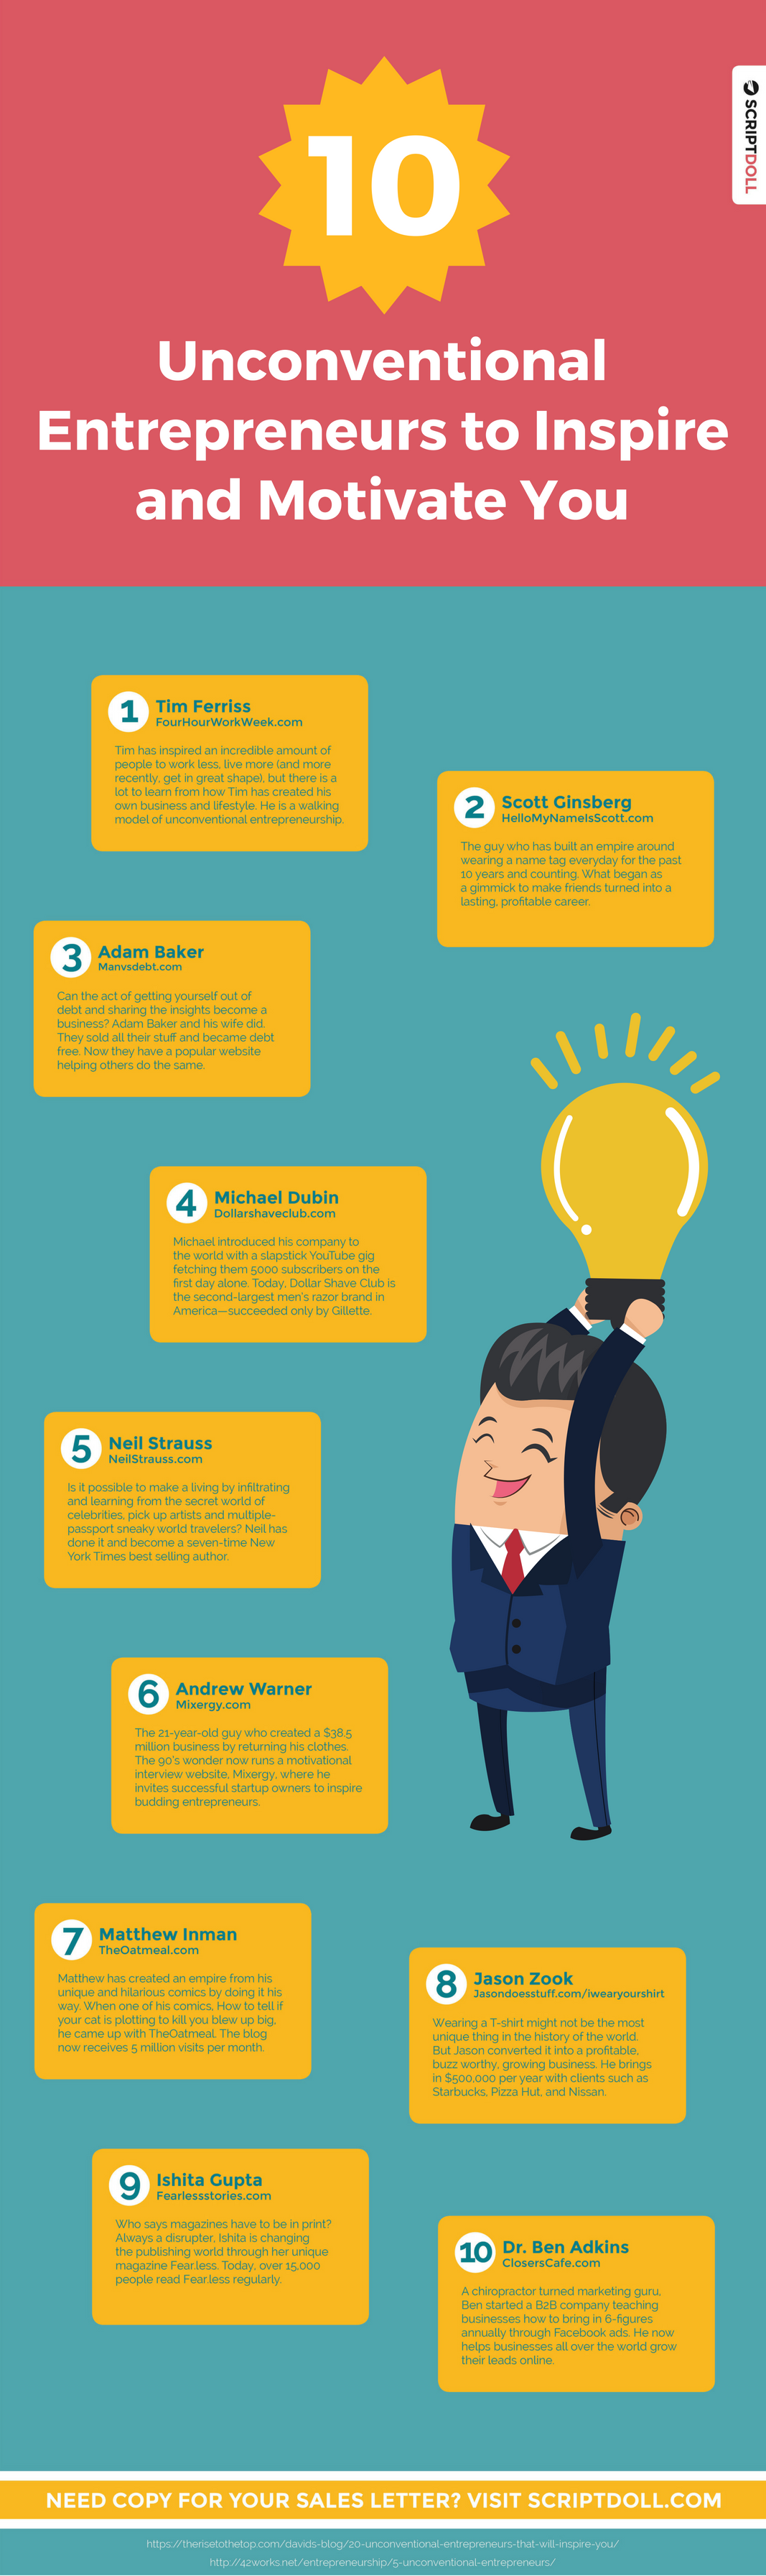 10 unconventional entrepreneurs to inspire and motivate you